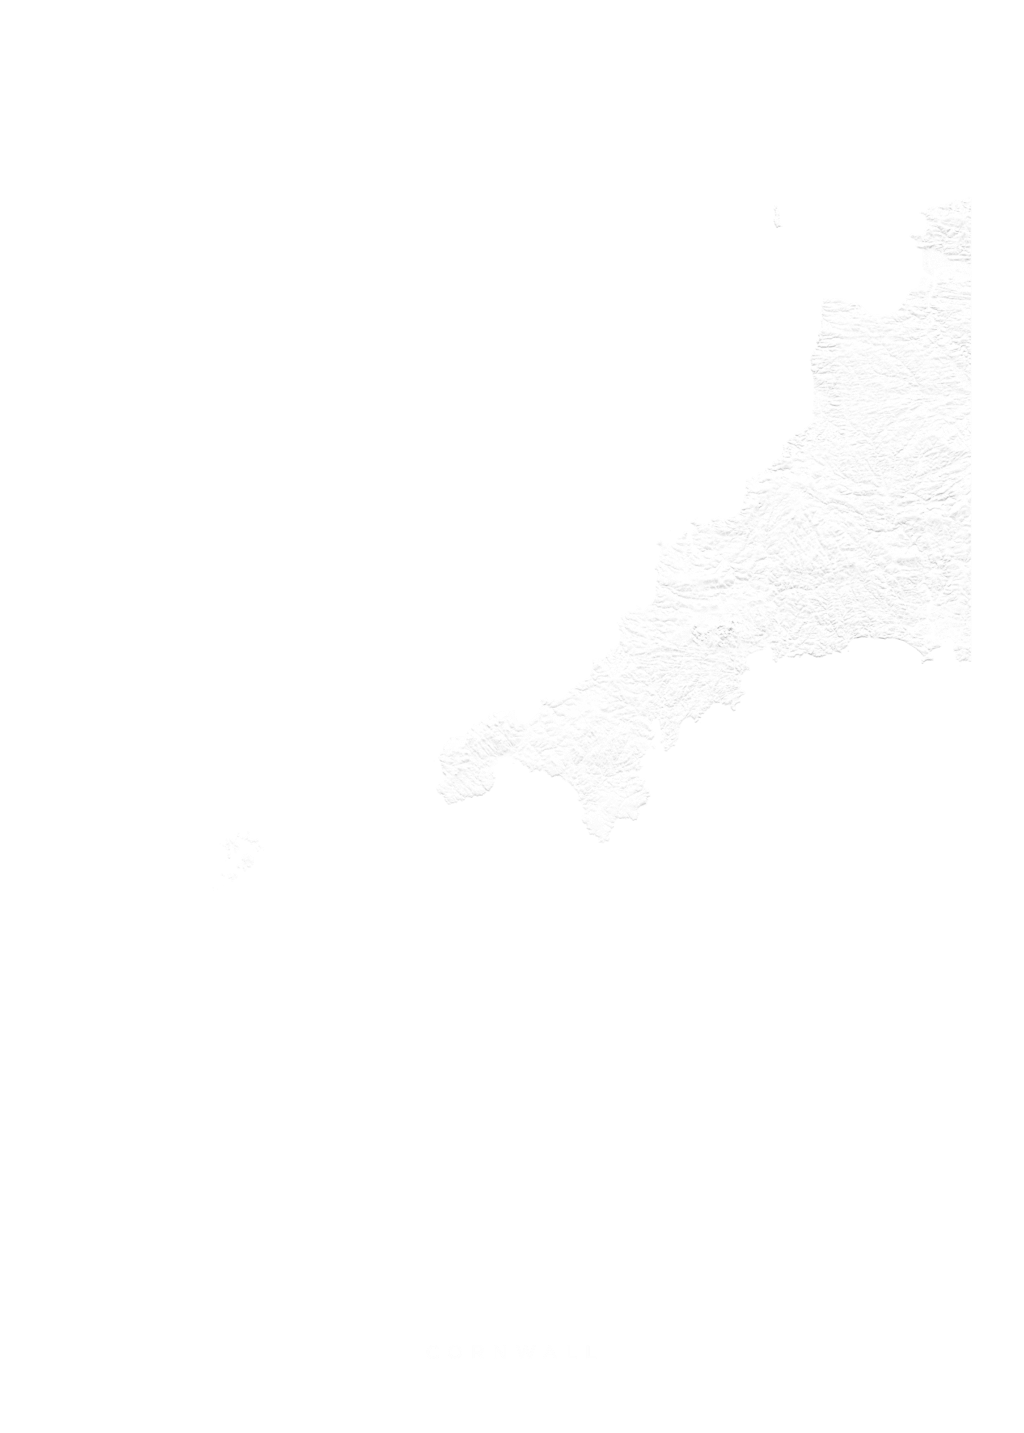 Cornwall wall map